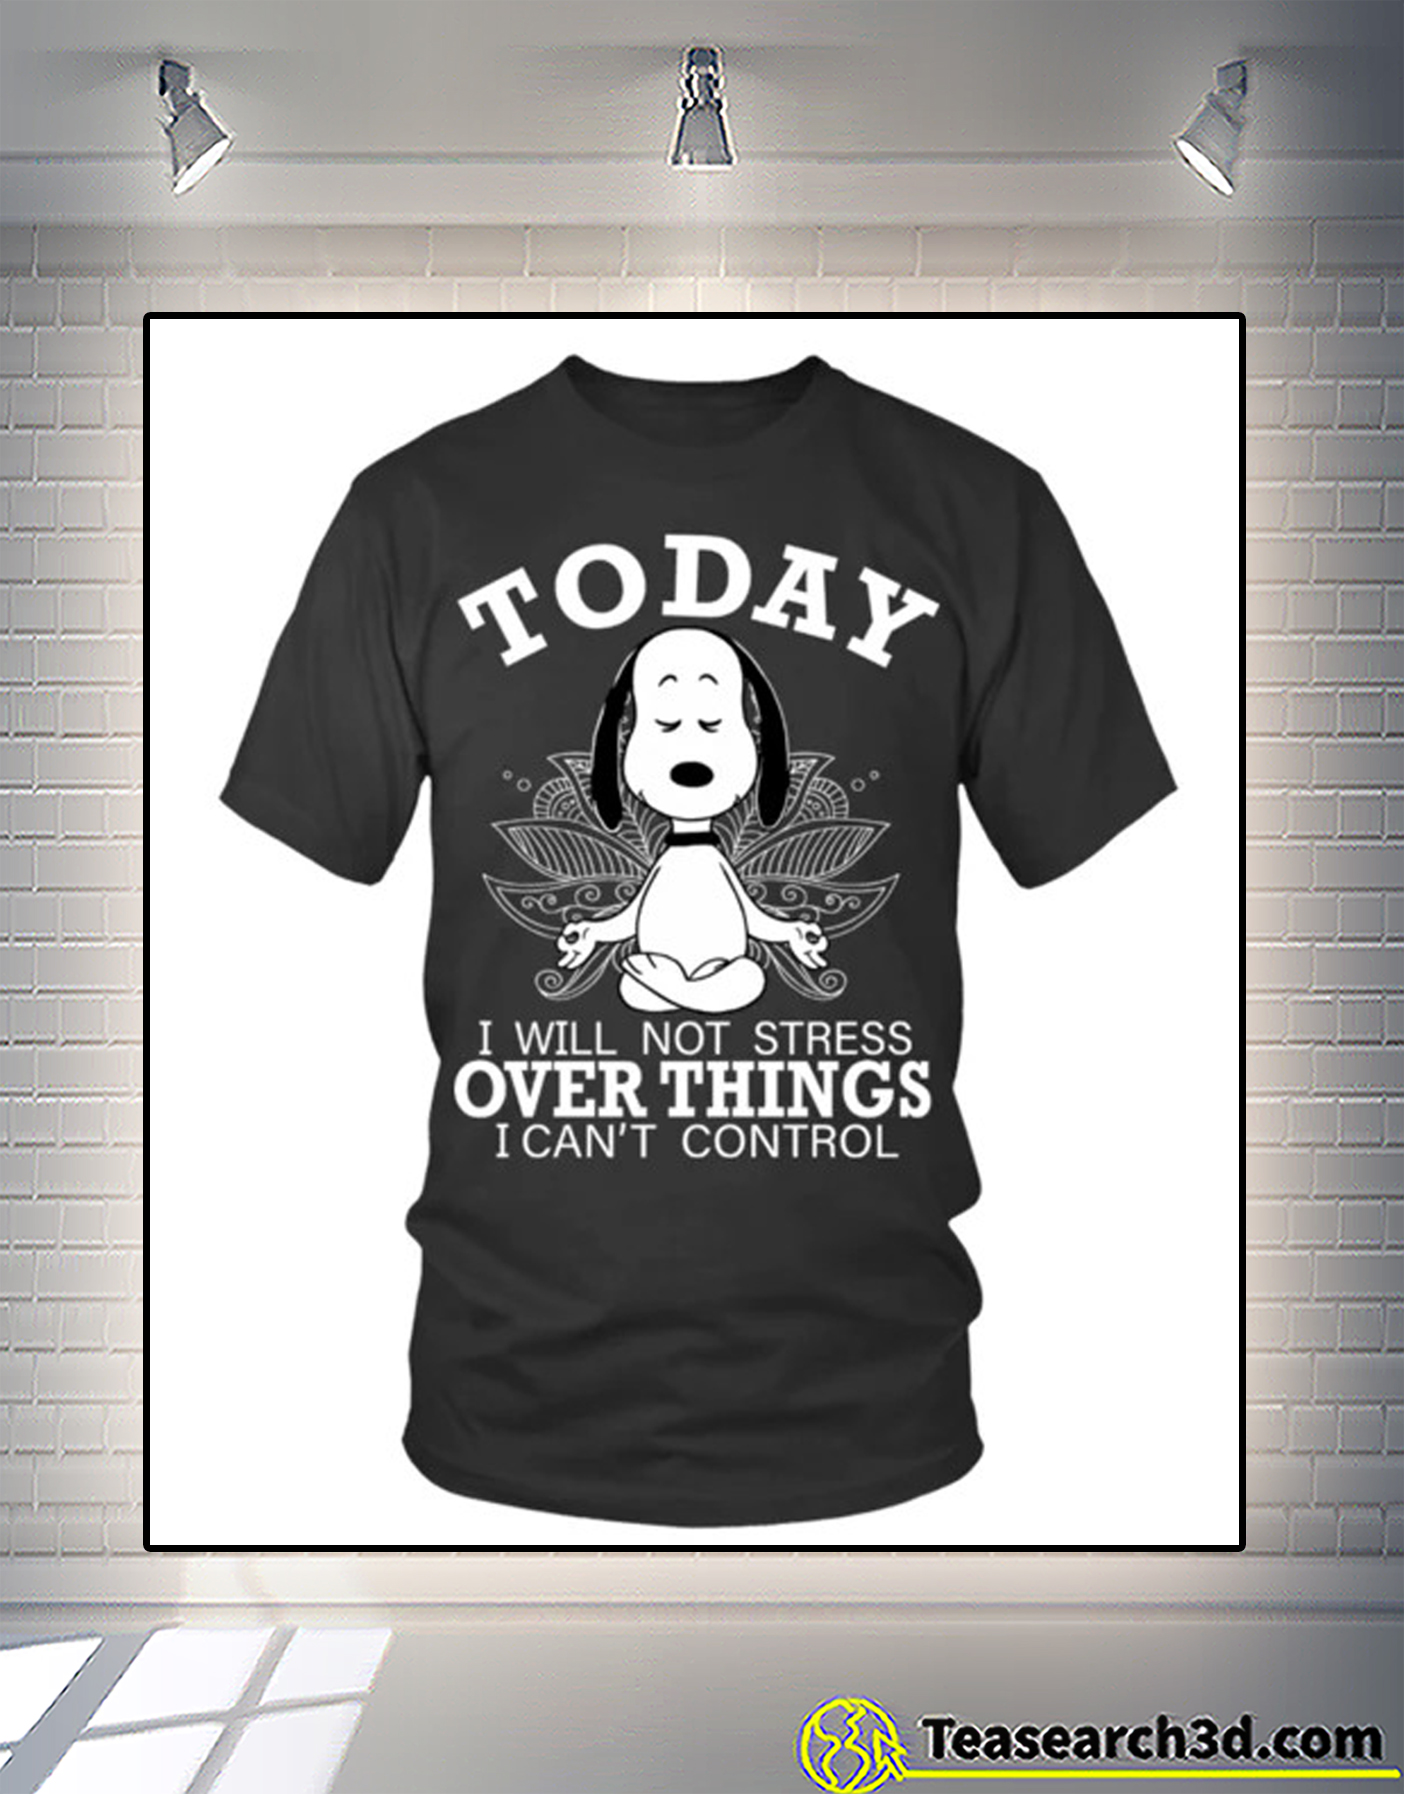 Snoopy today I will not stress over things I can't control t-shirt